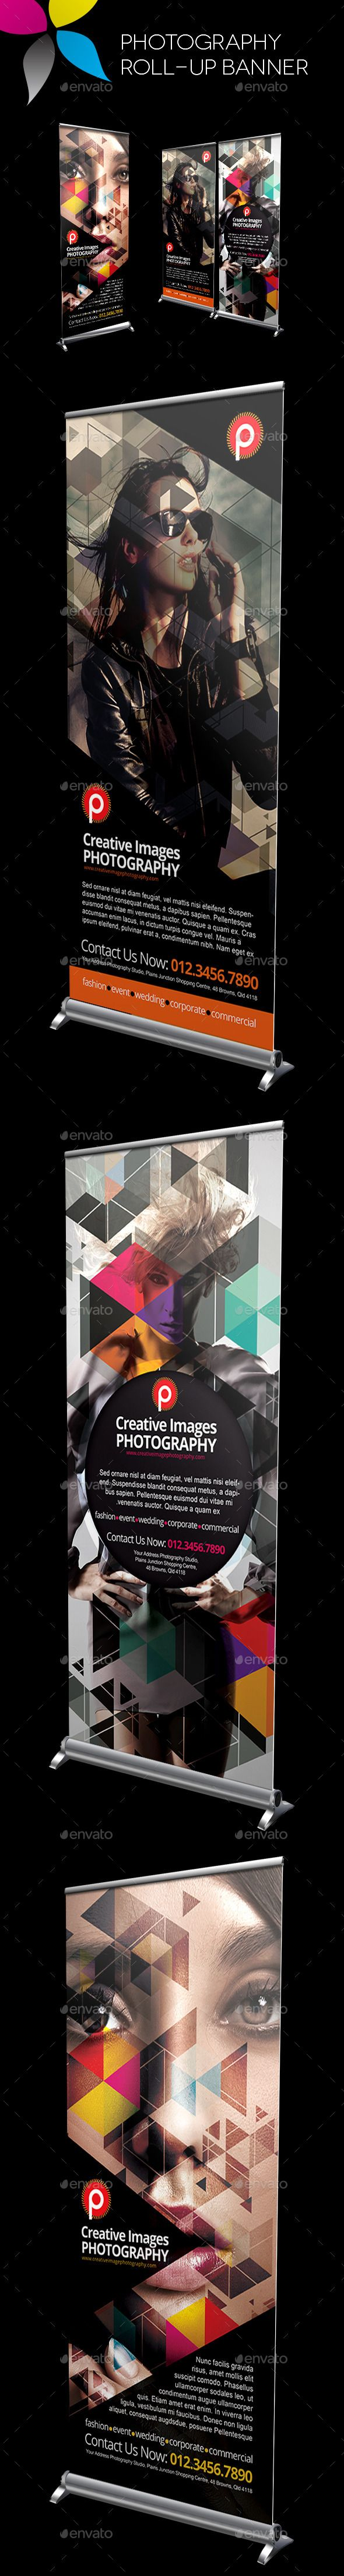 Photography Roll-Up Banner Template #design Download: http://graphicriver.net/item/photography-rollup-banner/10680028?ref=ksioks